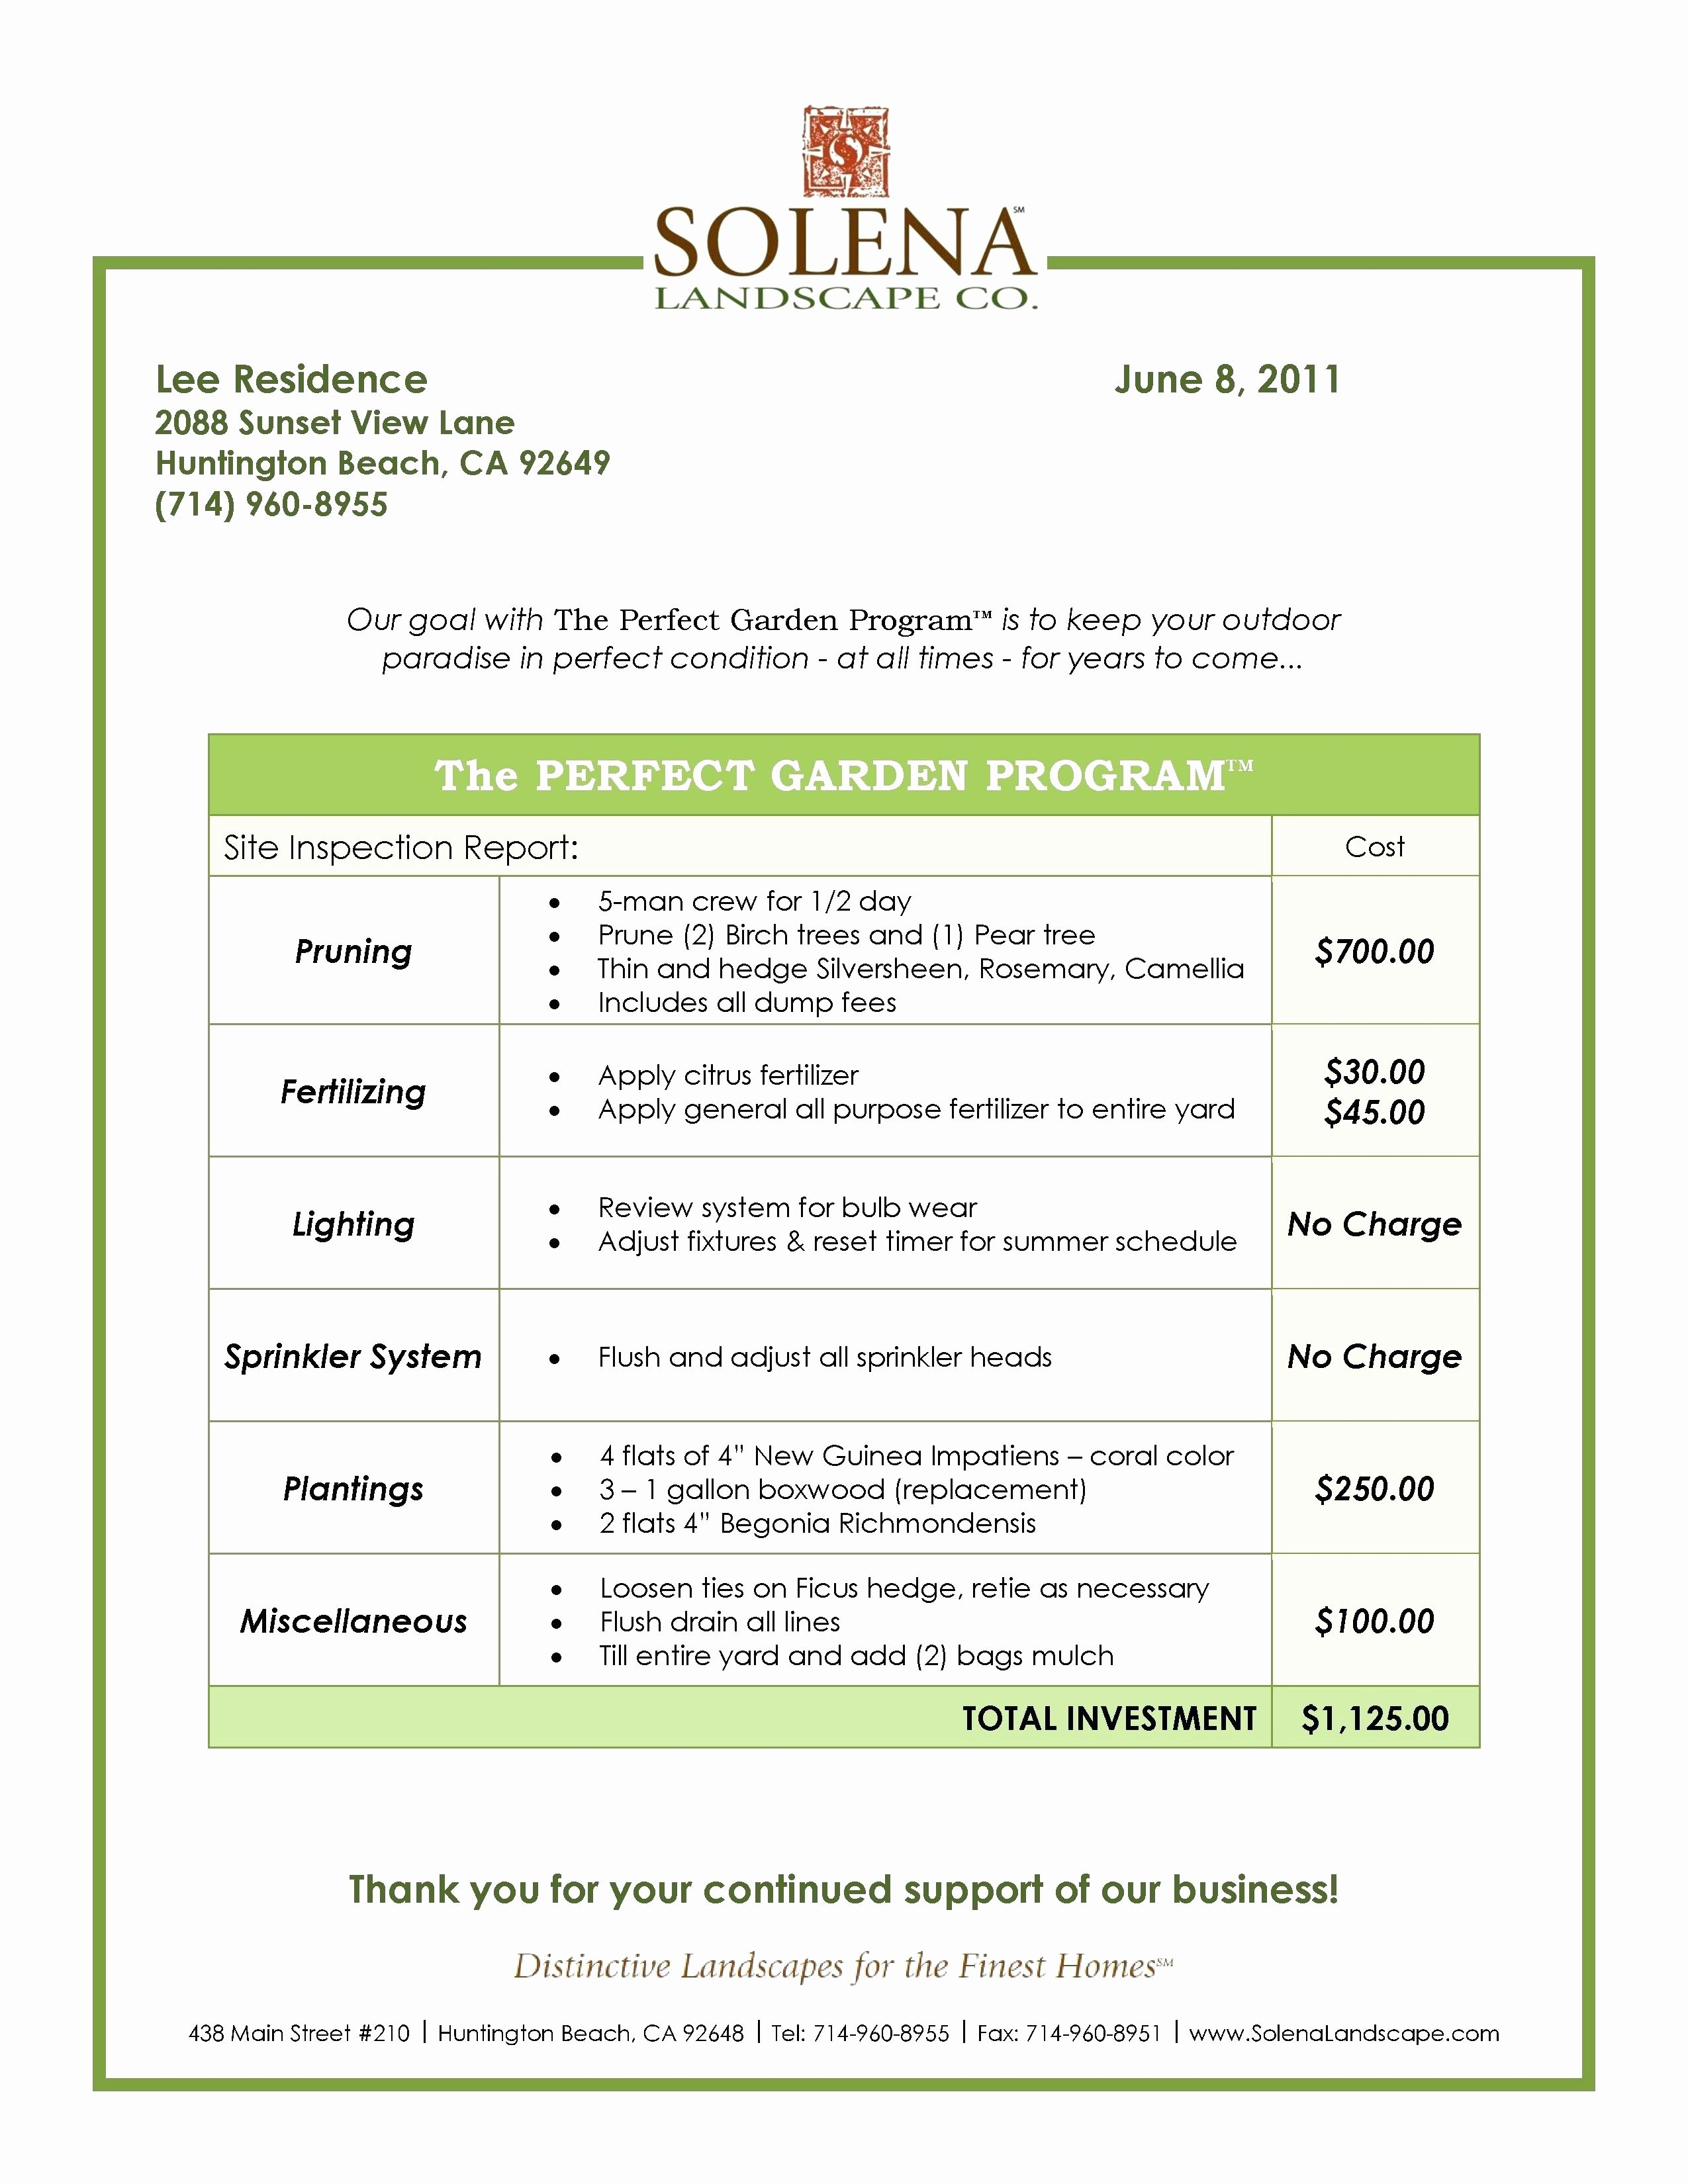 Landscaping Scope Of Work Template Inspirational Landscaping Scope Work Template